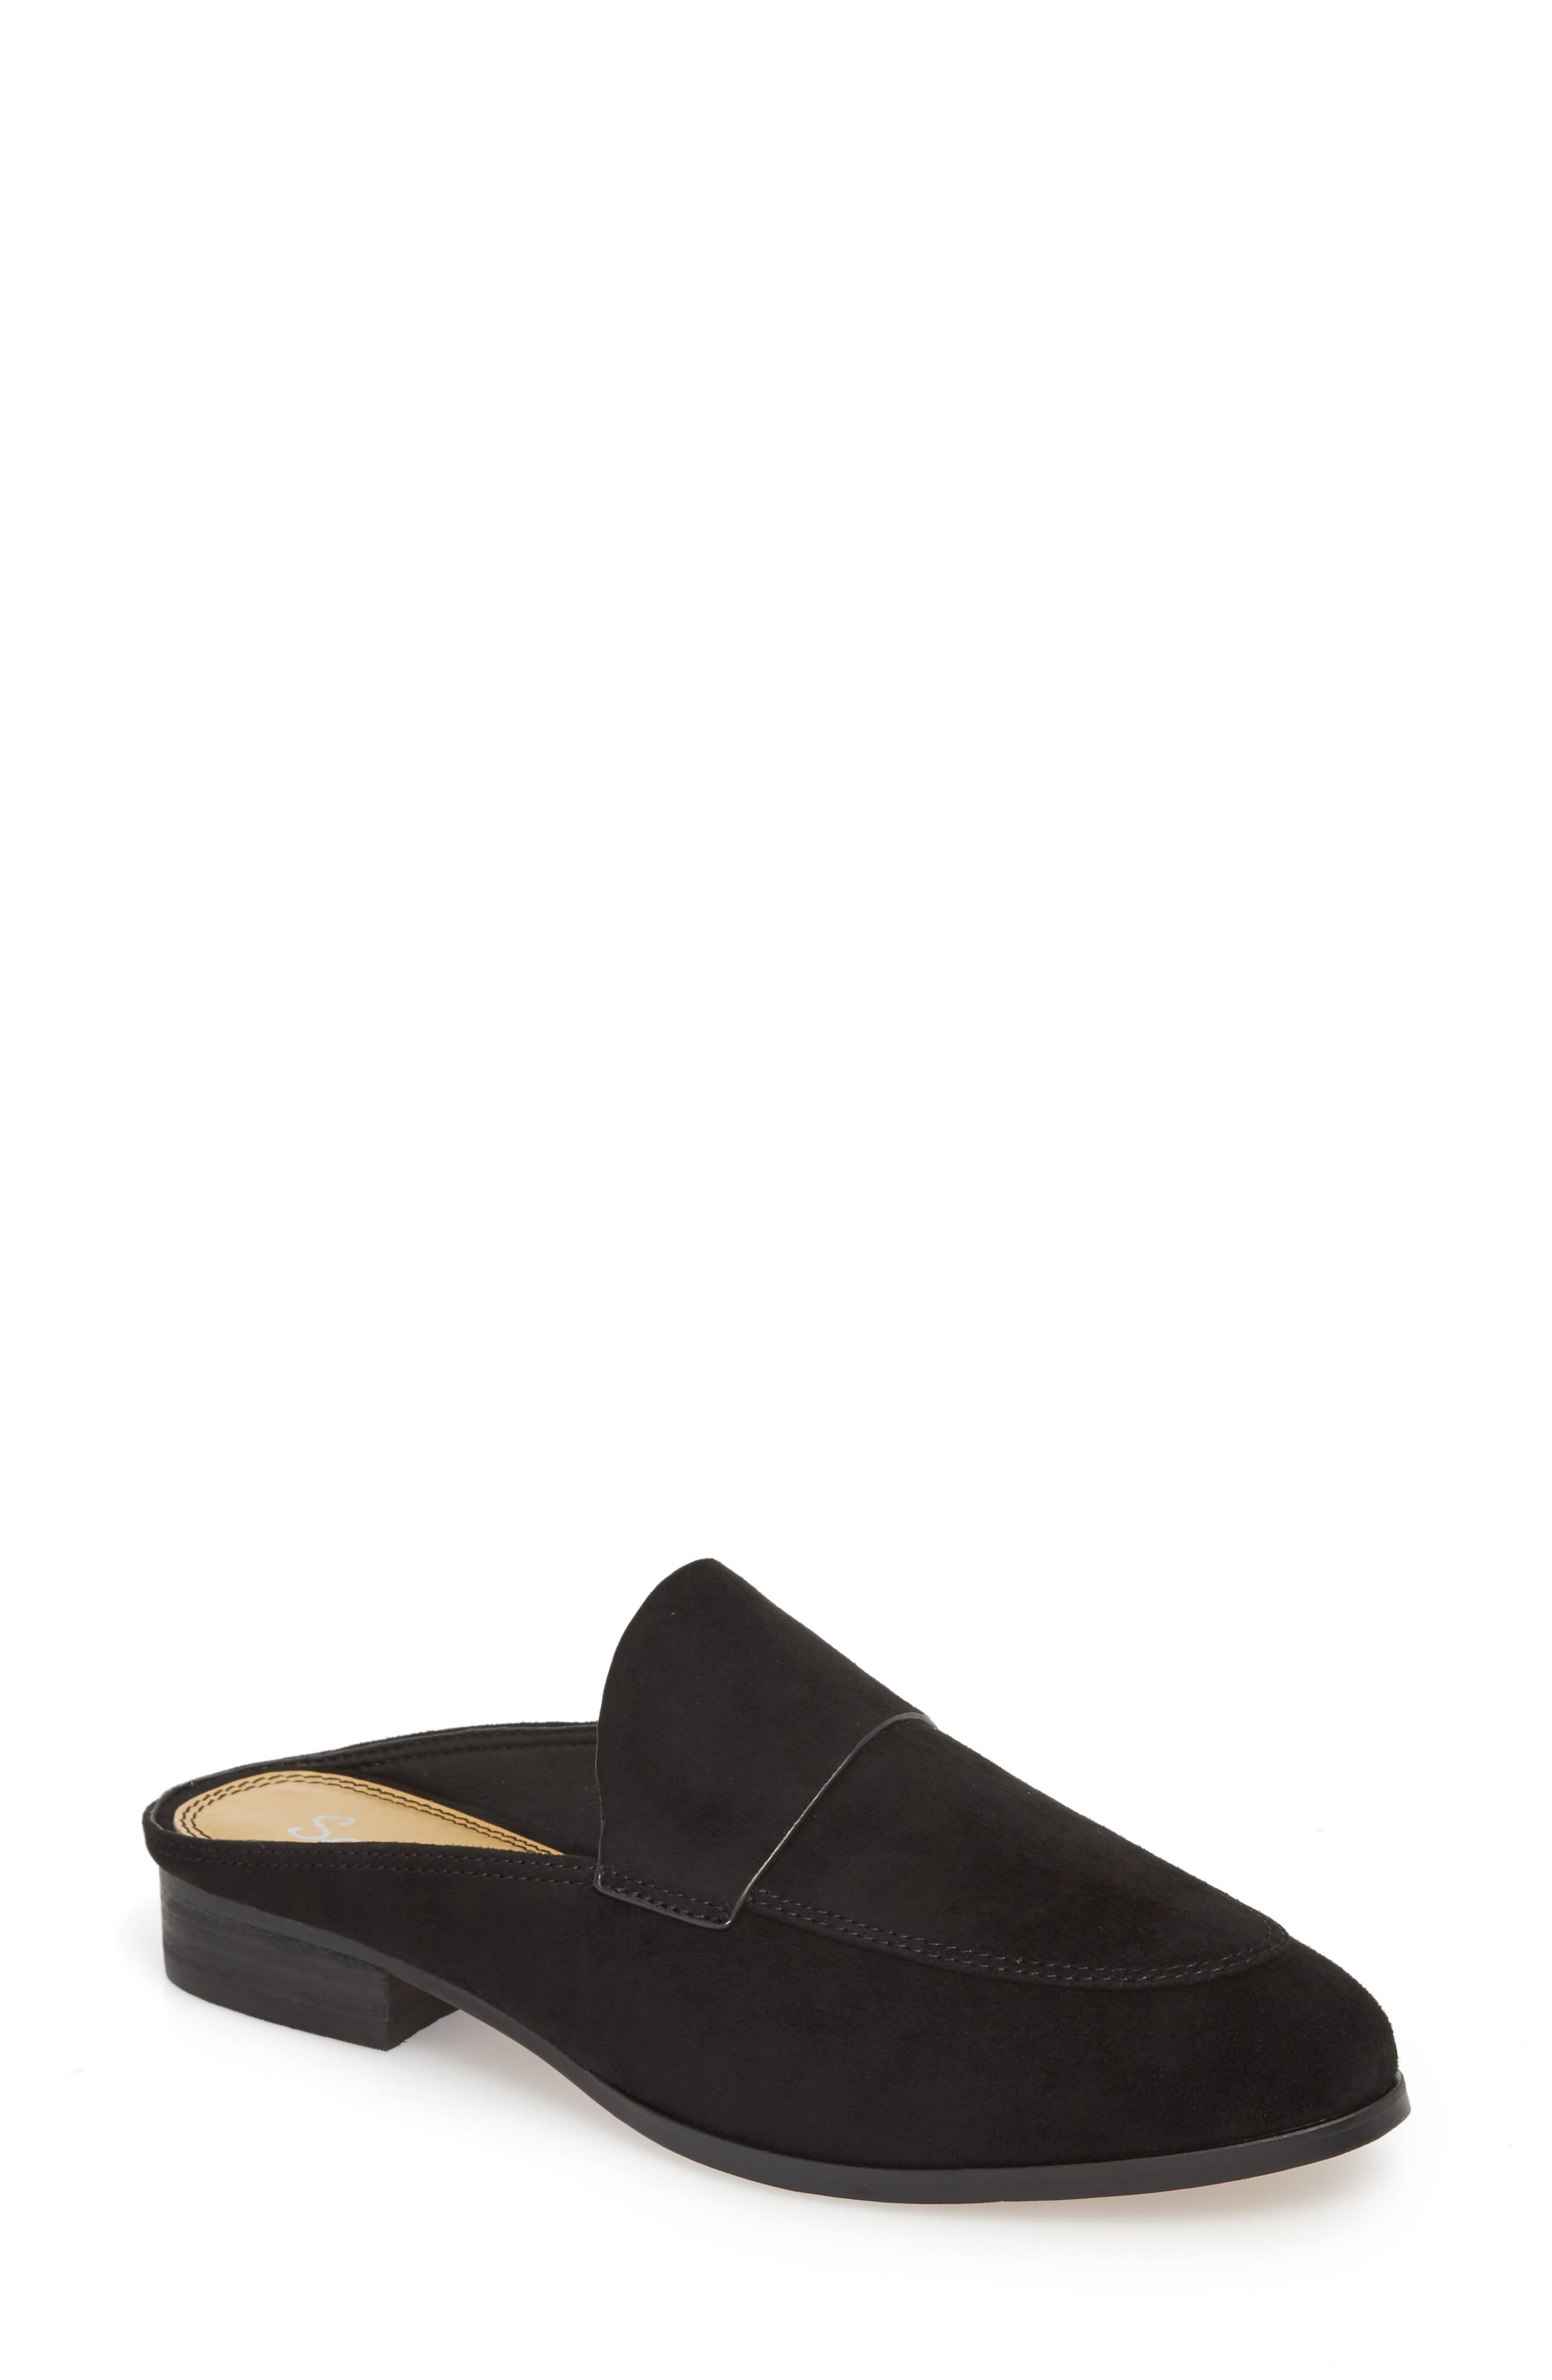 Nima Loafer Mule,                         Main,                         color, 013